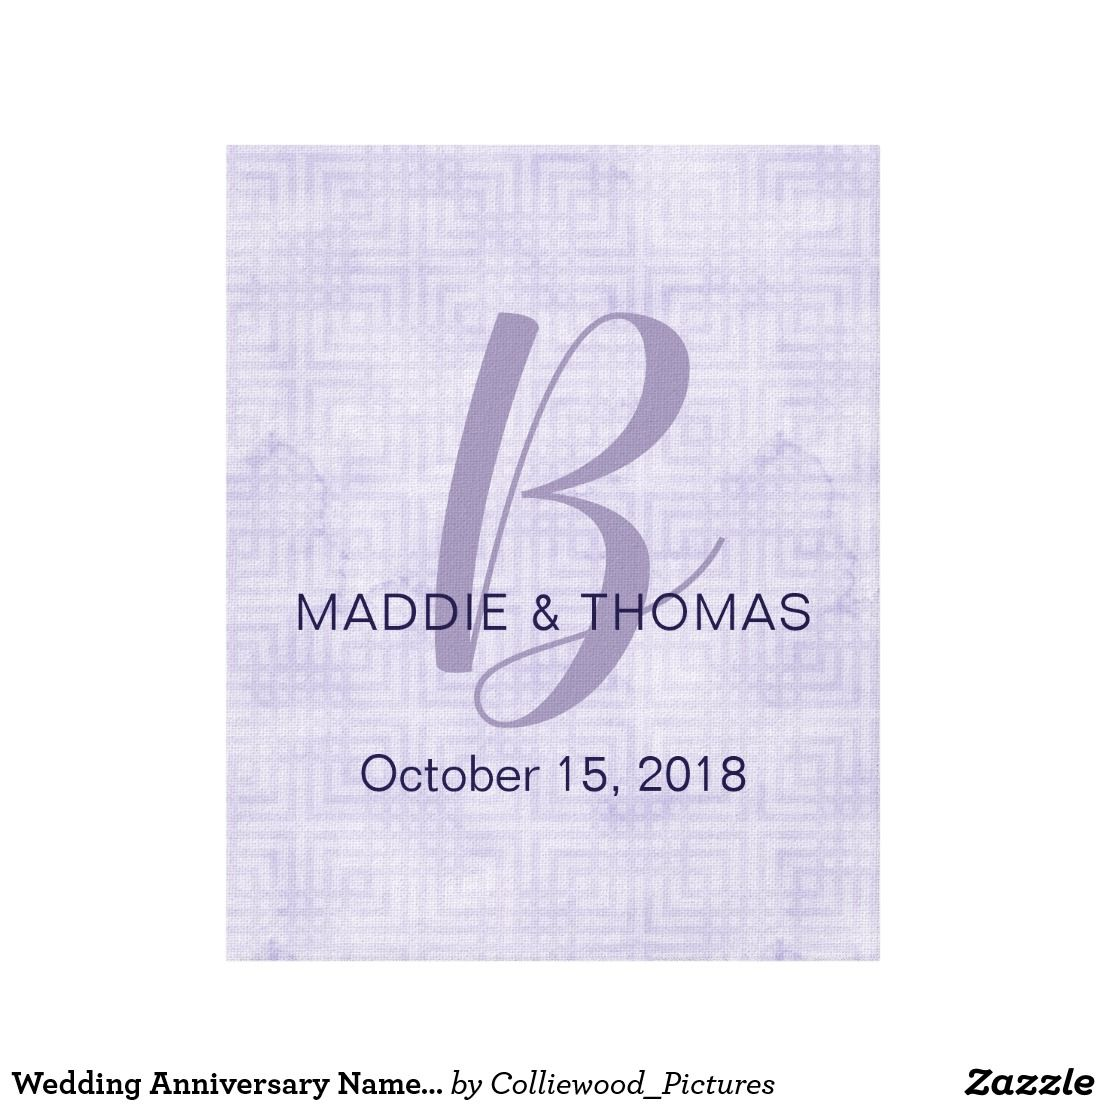 Wedding decorations names october 2018 Wedding Anniversary Name and Initial Ultraviolet Canvas Print